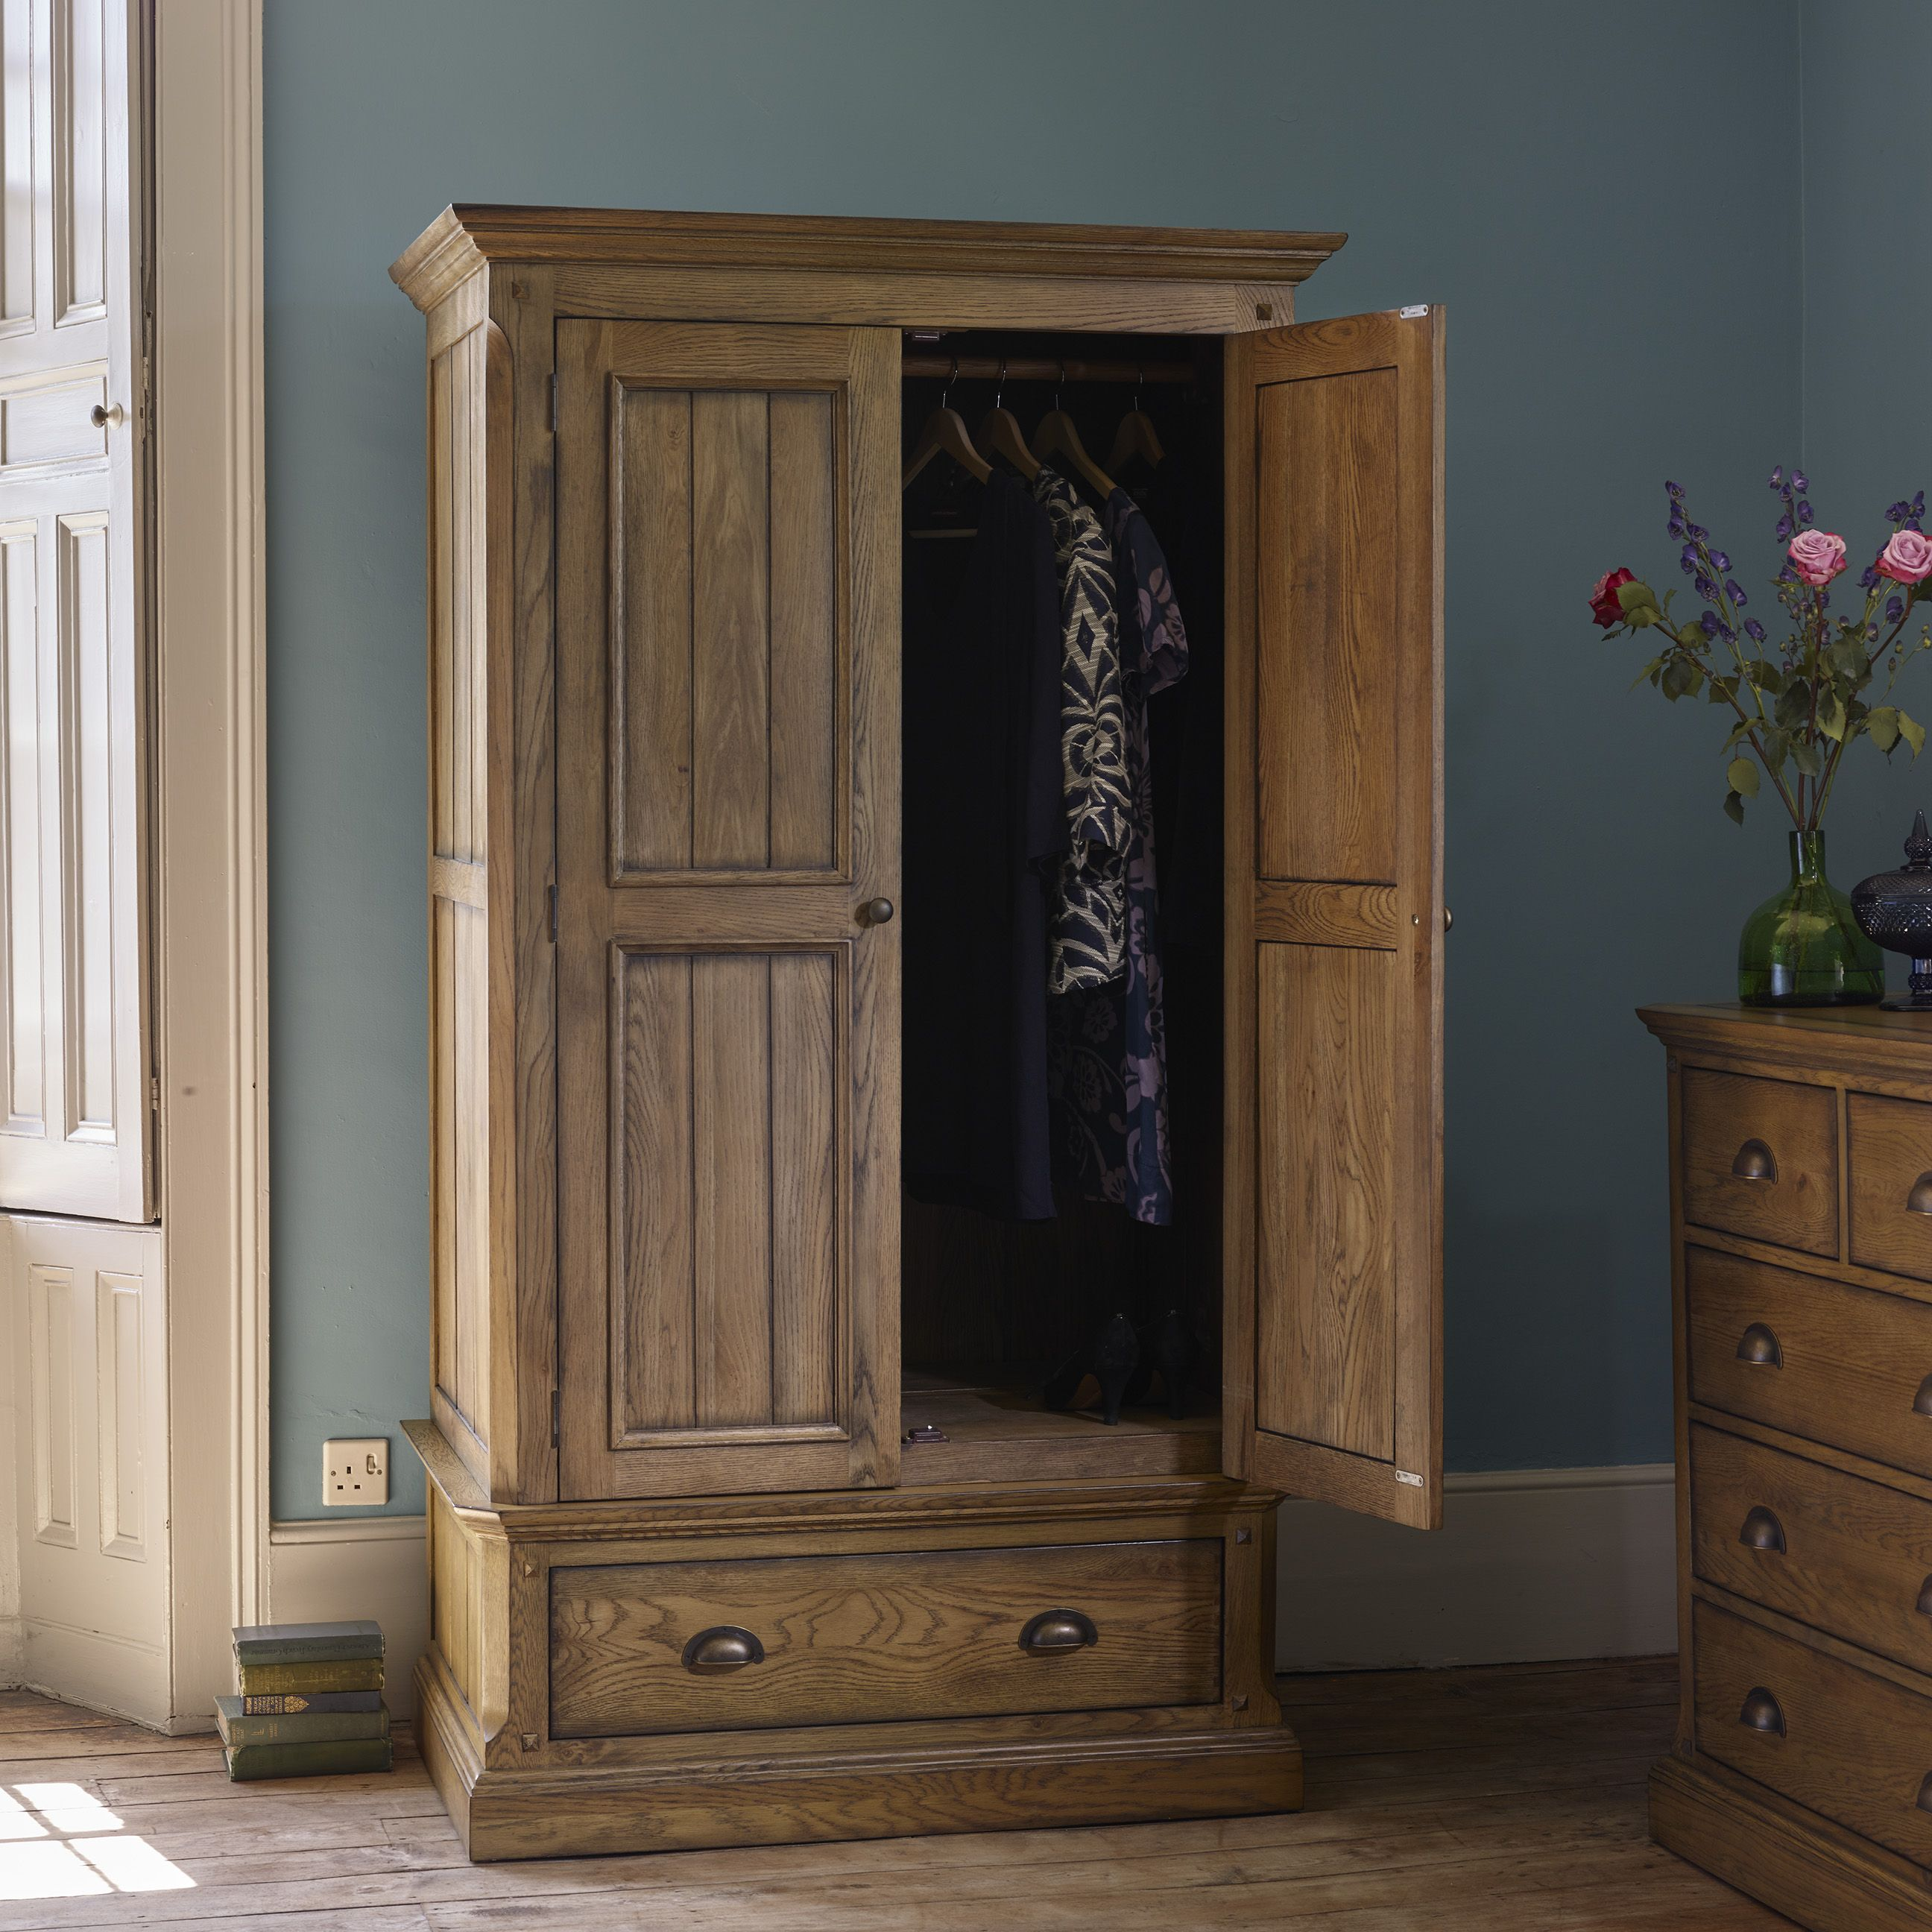 Delicieux If Youu0027re Looking For A Wardrobe With An Updated, Traditional Feel, Manor  House Could Be For You. The Range Has Its Roots In Antique English Country  ...